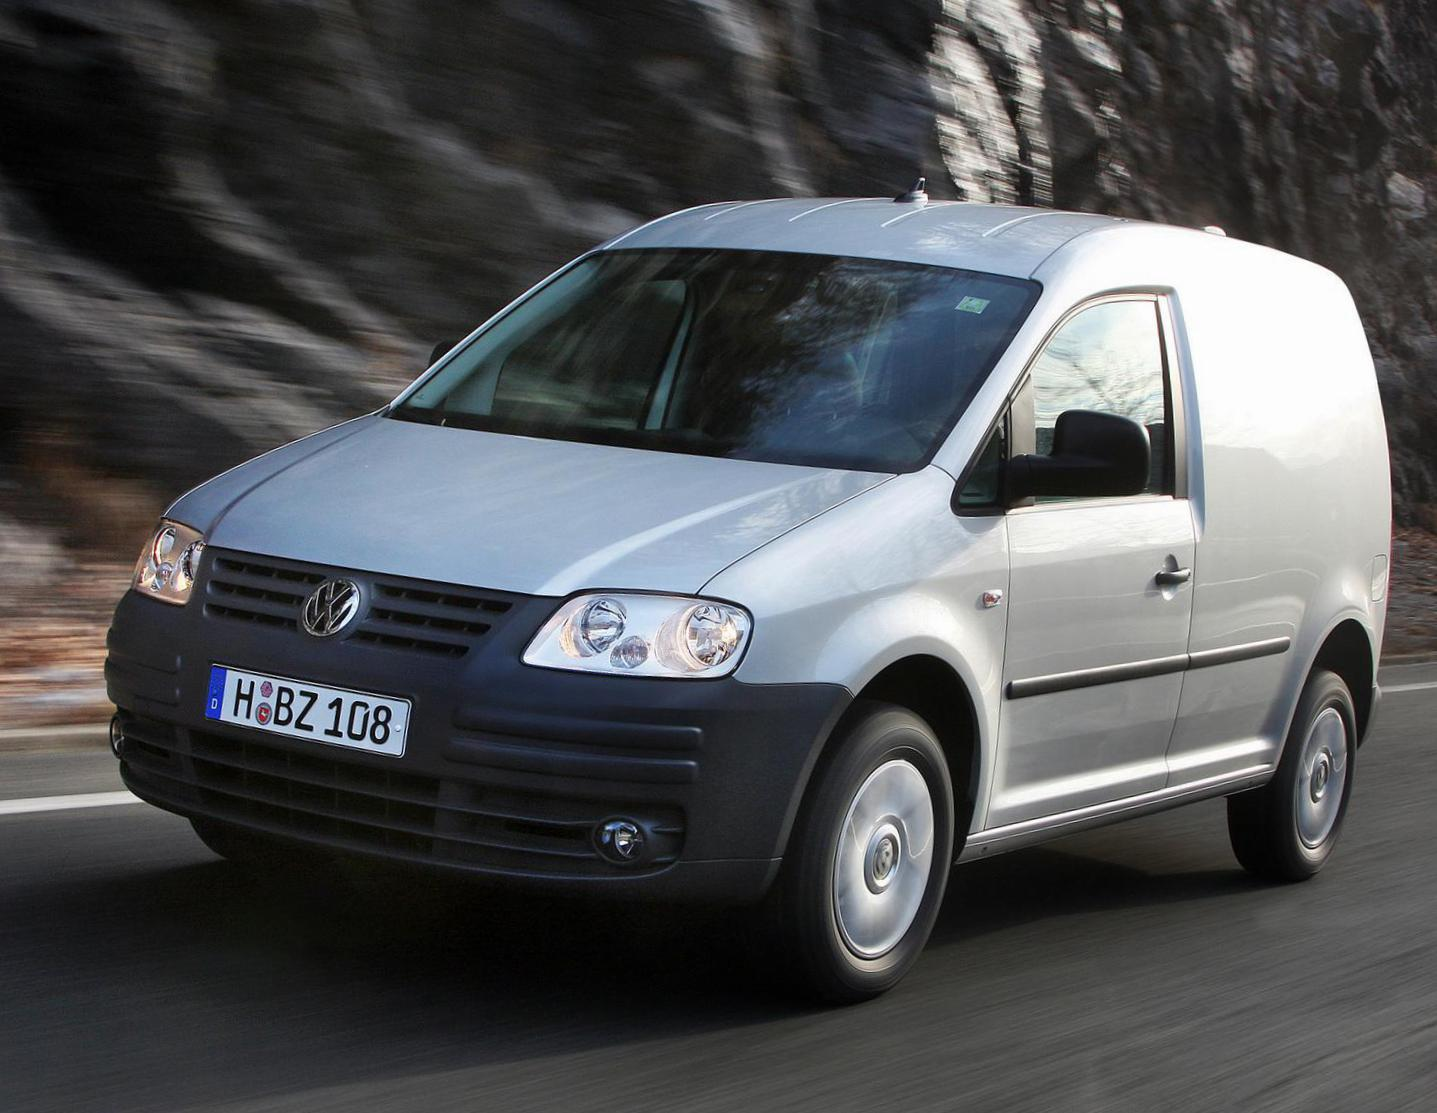 Volkswagen Caddy Kasten configuration 2005